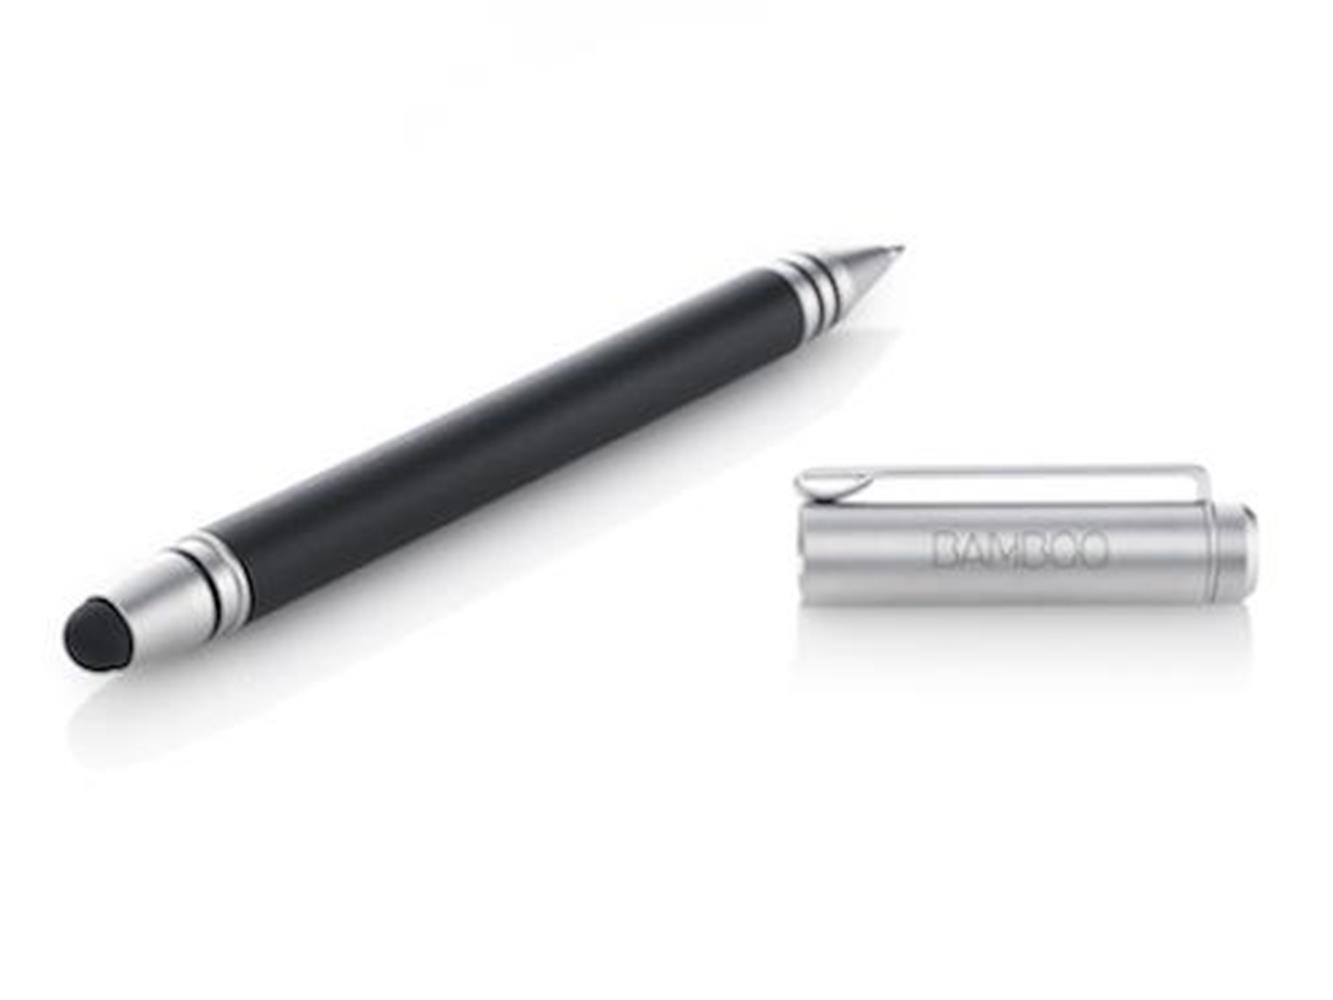 WACOM BAMBOO STYLUS DUO (IPAD/TABLET)